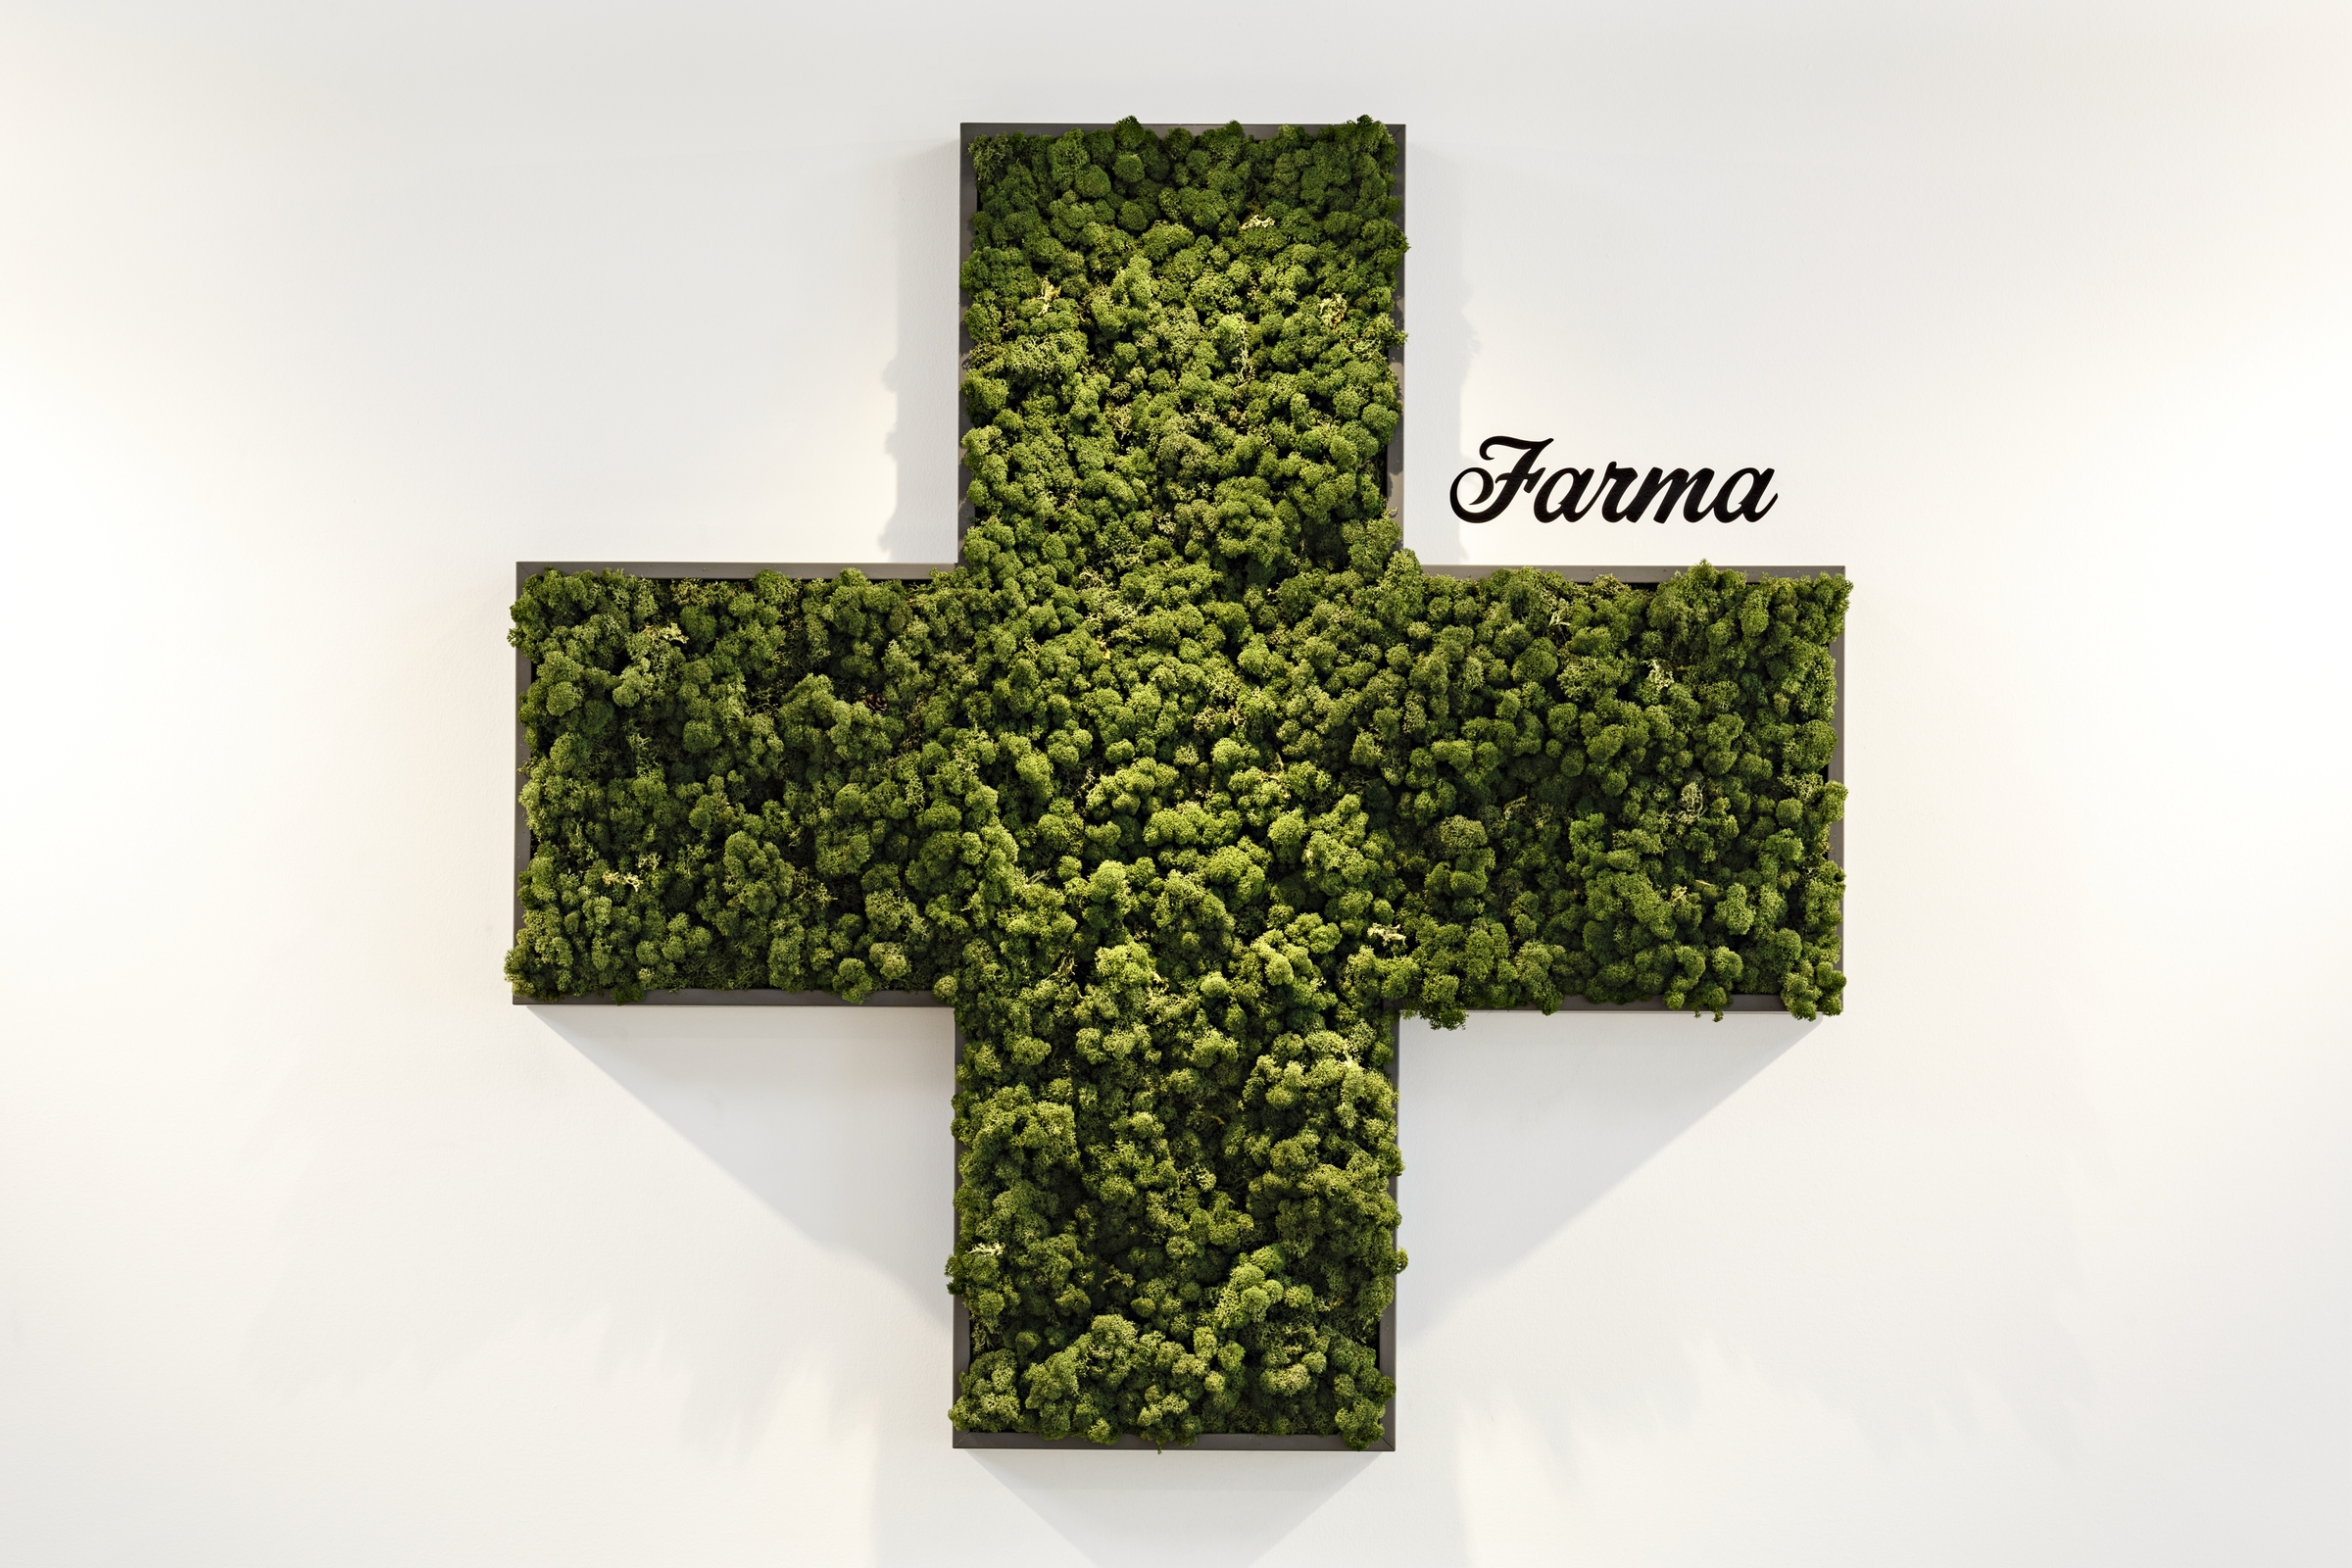 An iconic image:  a mossy green cross